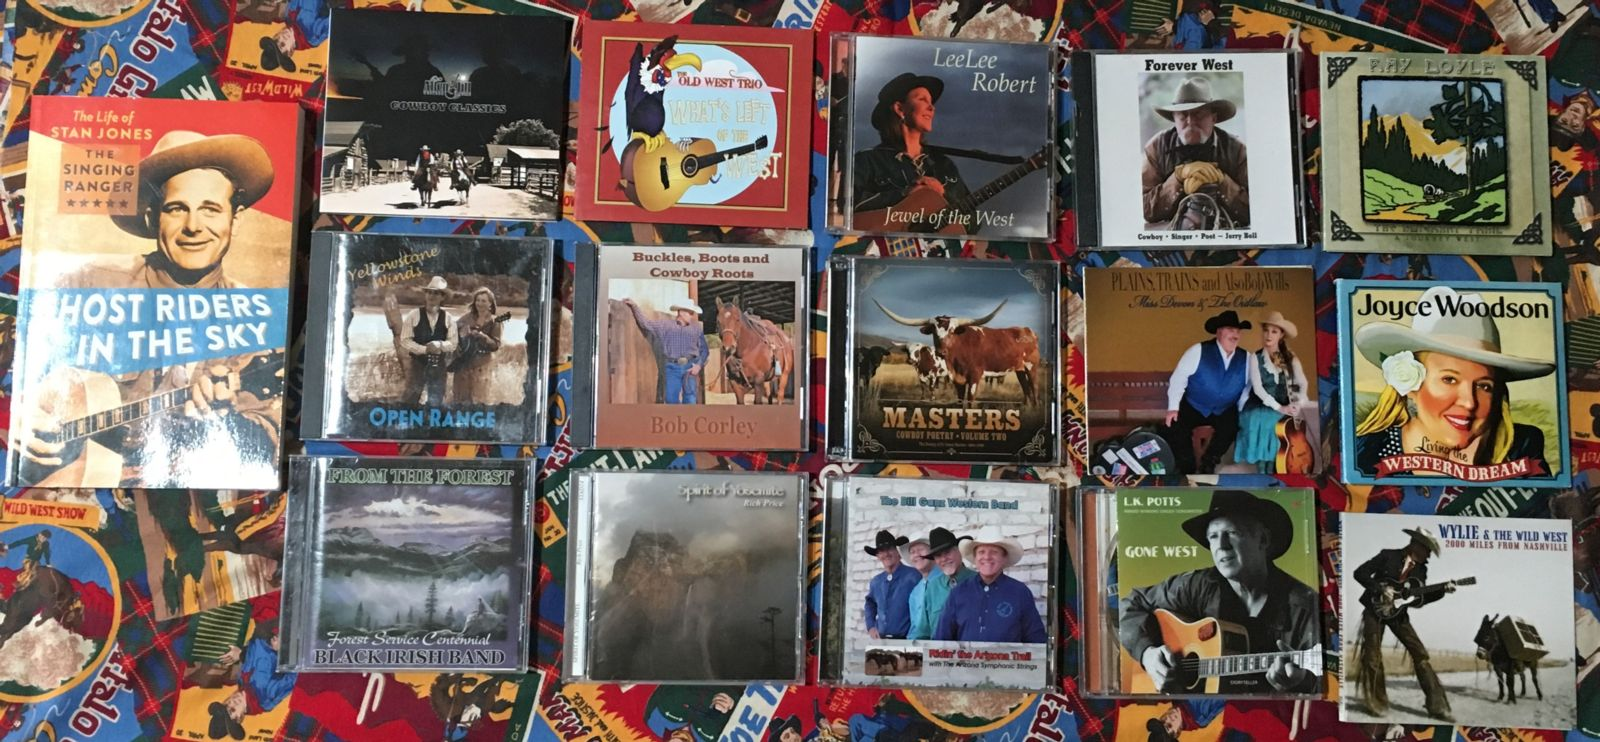 OutWest Hour Radio Show Playlist CD Covers June 1, 2019